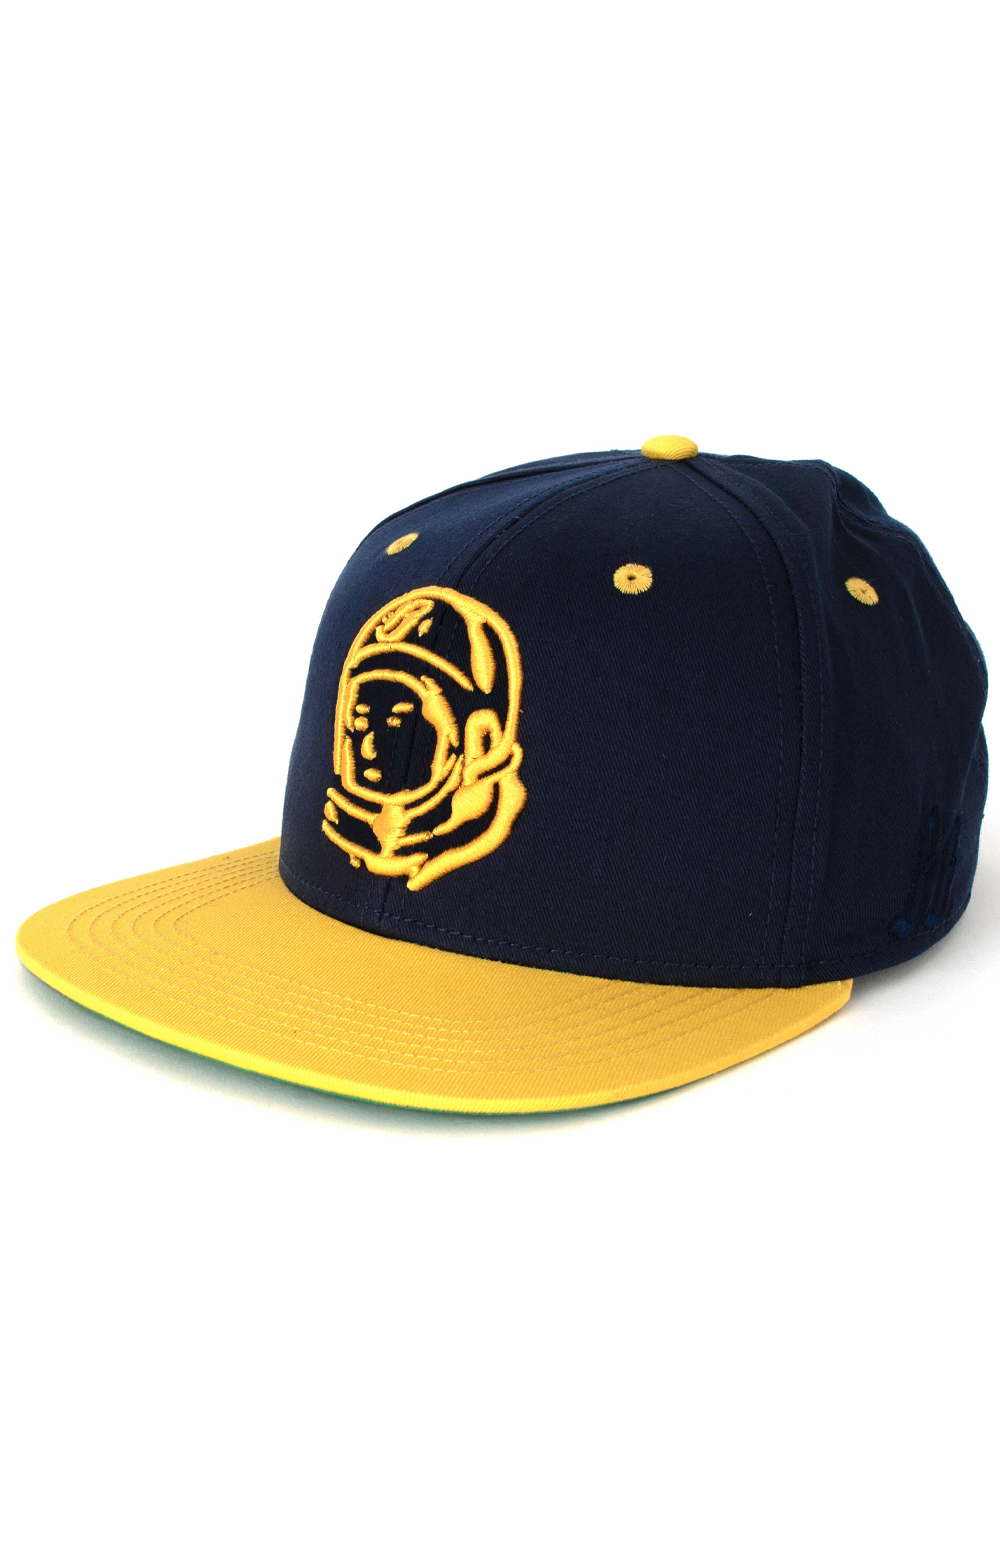 f41561e3431 BB Helmet Snap-Back Hat - Peacoat. Loading... Home · Brands · Billionaire  Boys Club ...